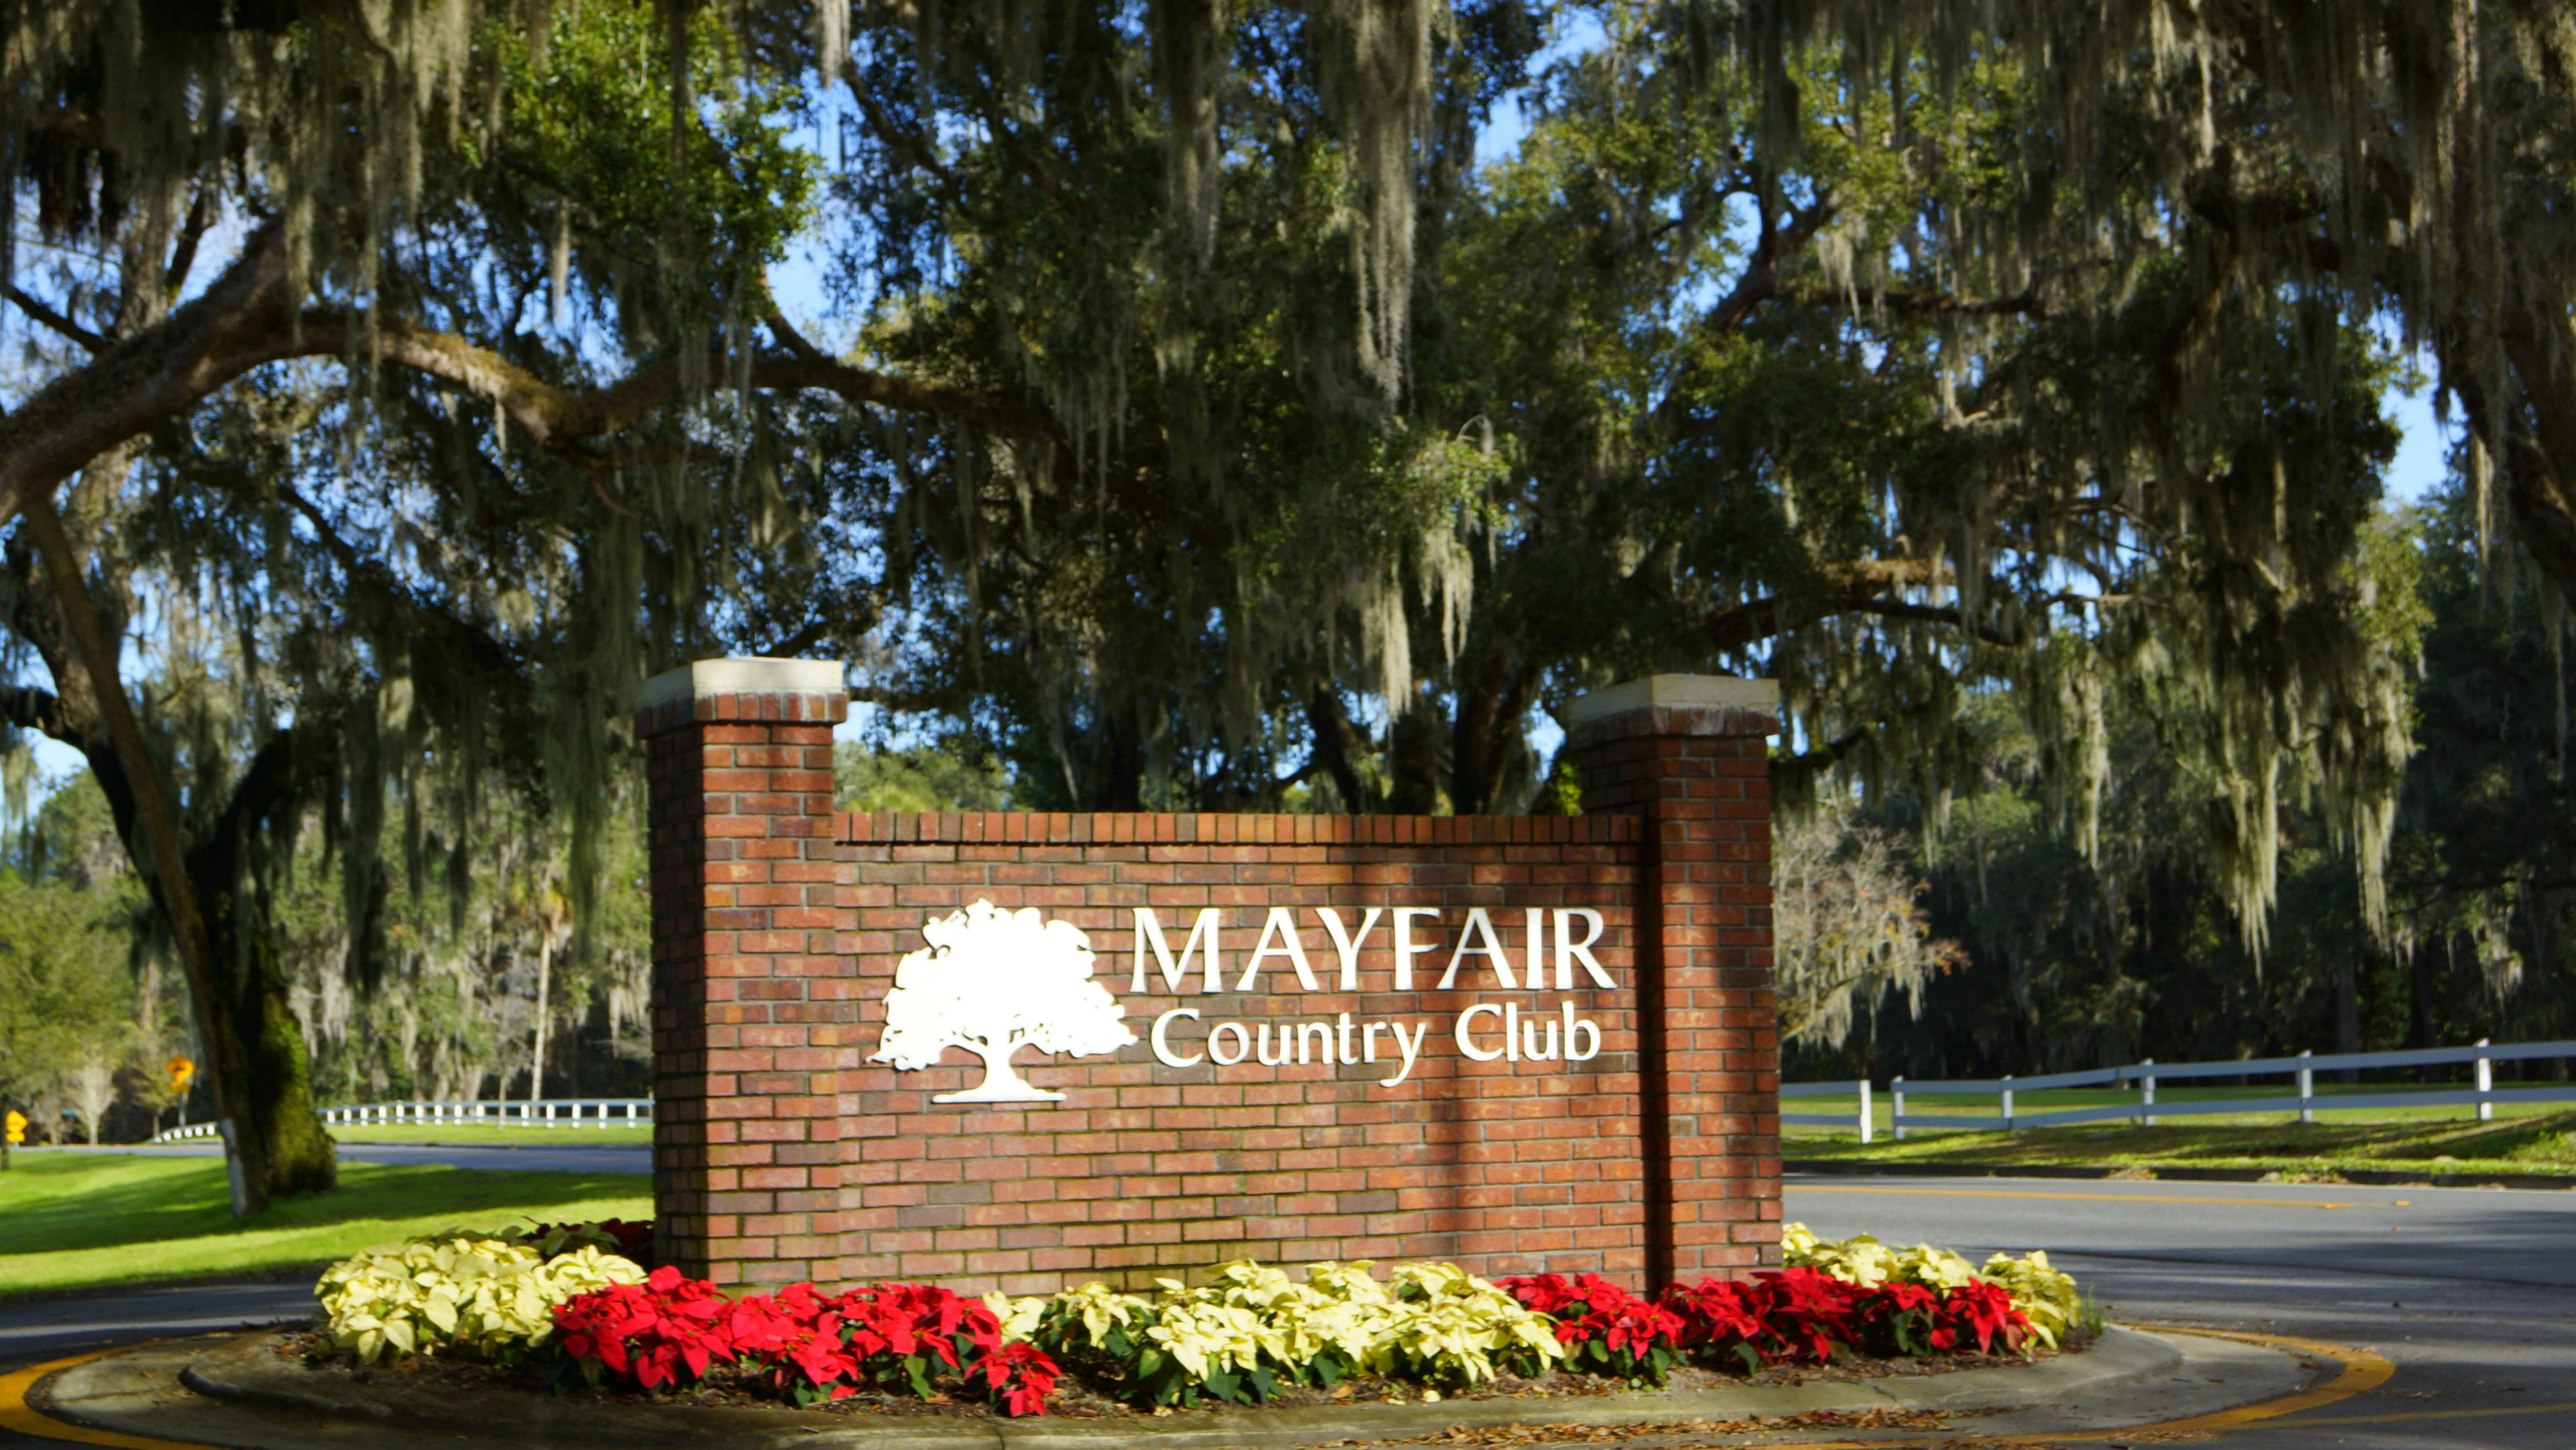 Mayfair Country Club sign